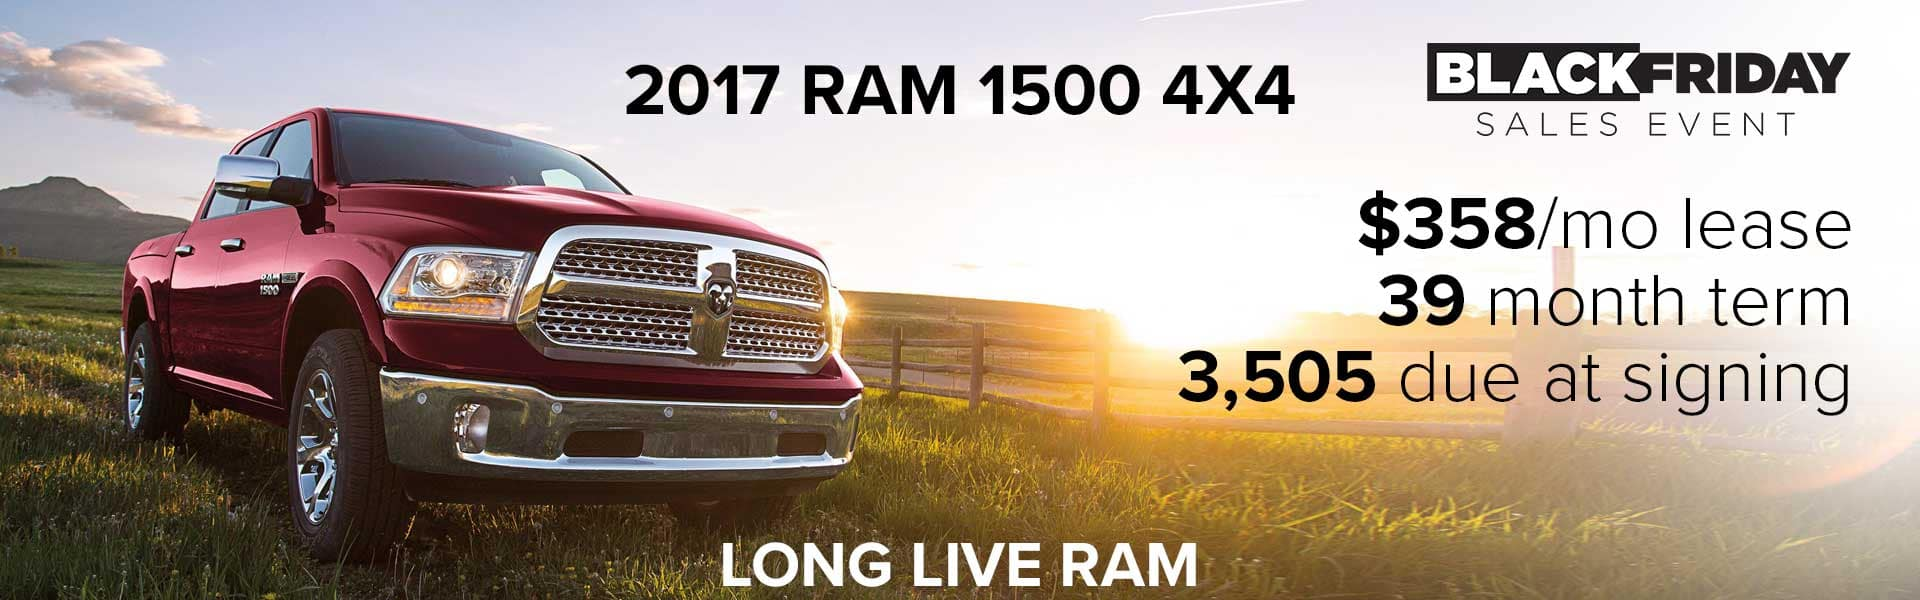 Lease a 2017 RAM 1500 4x4 Big Horn for $358 per month!